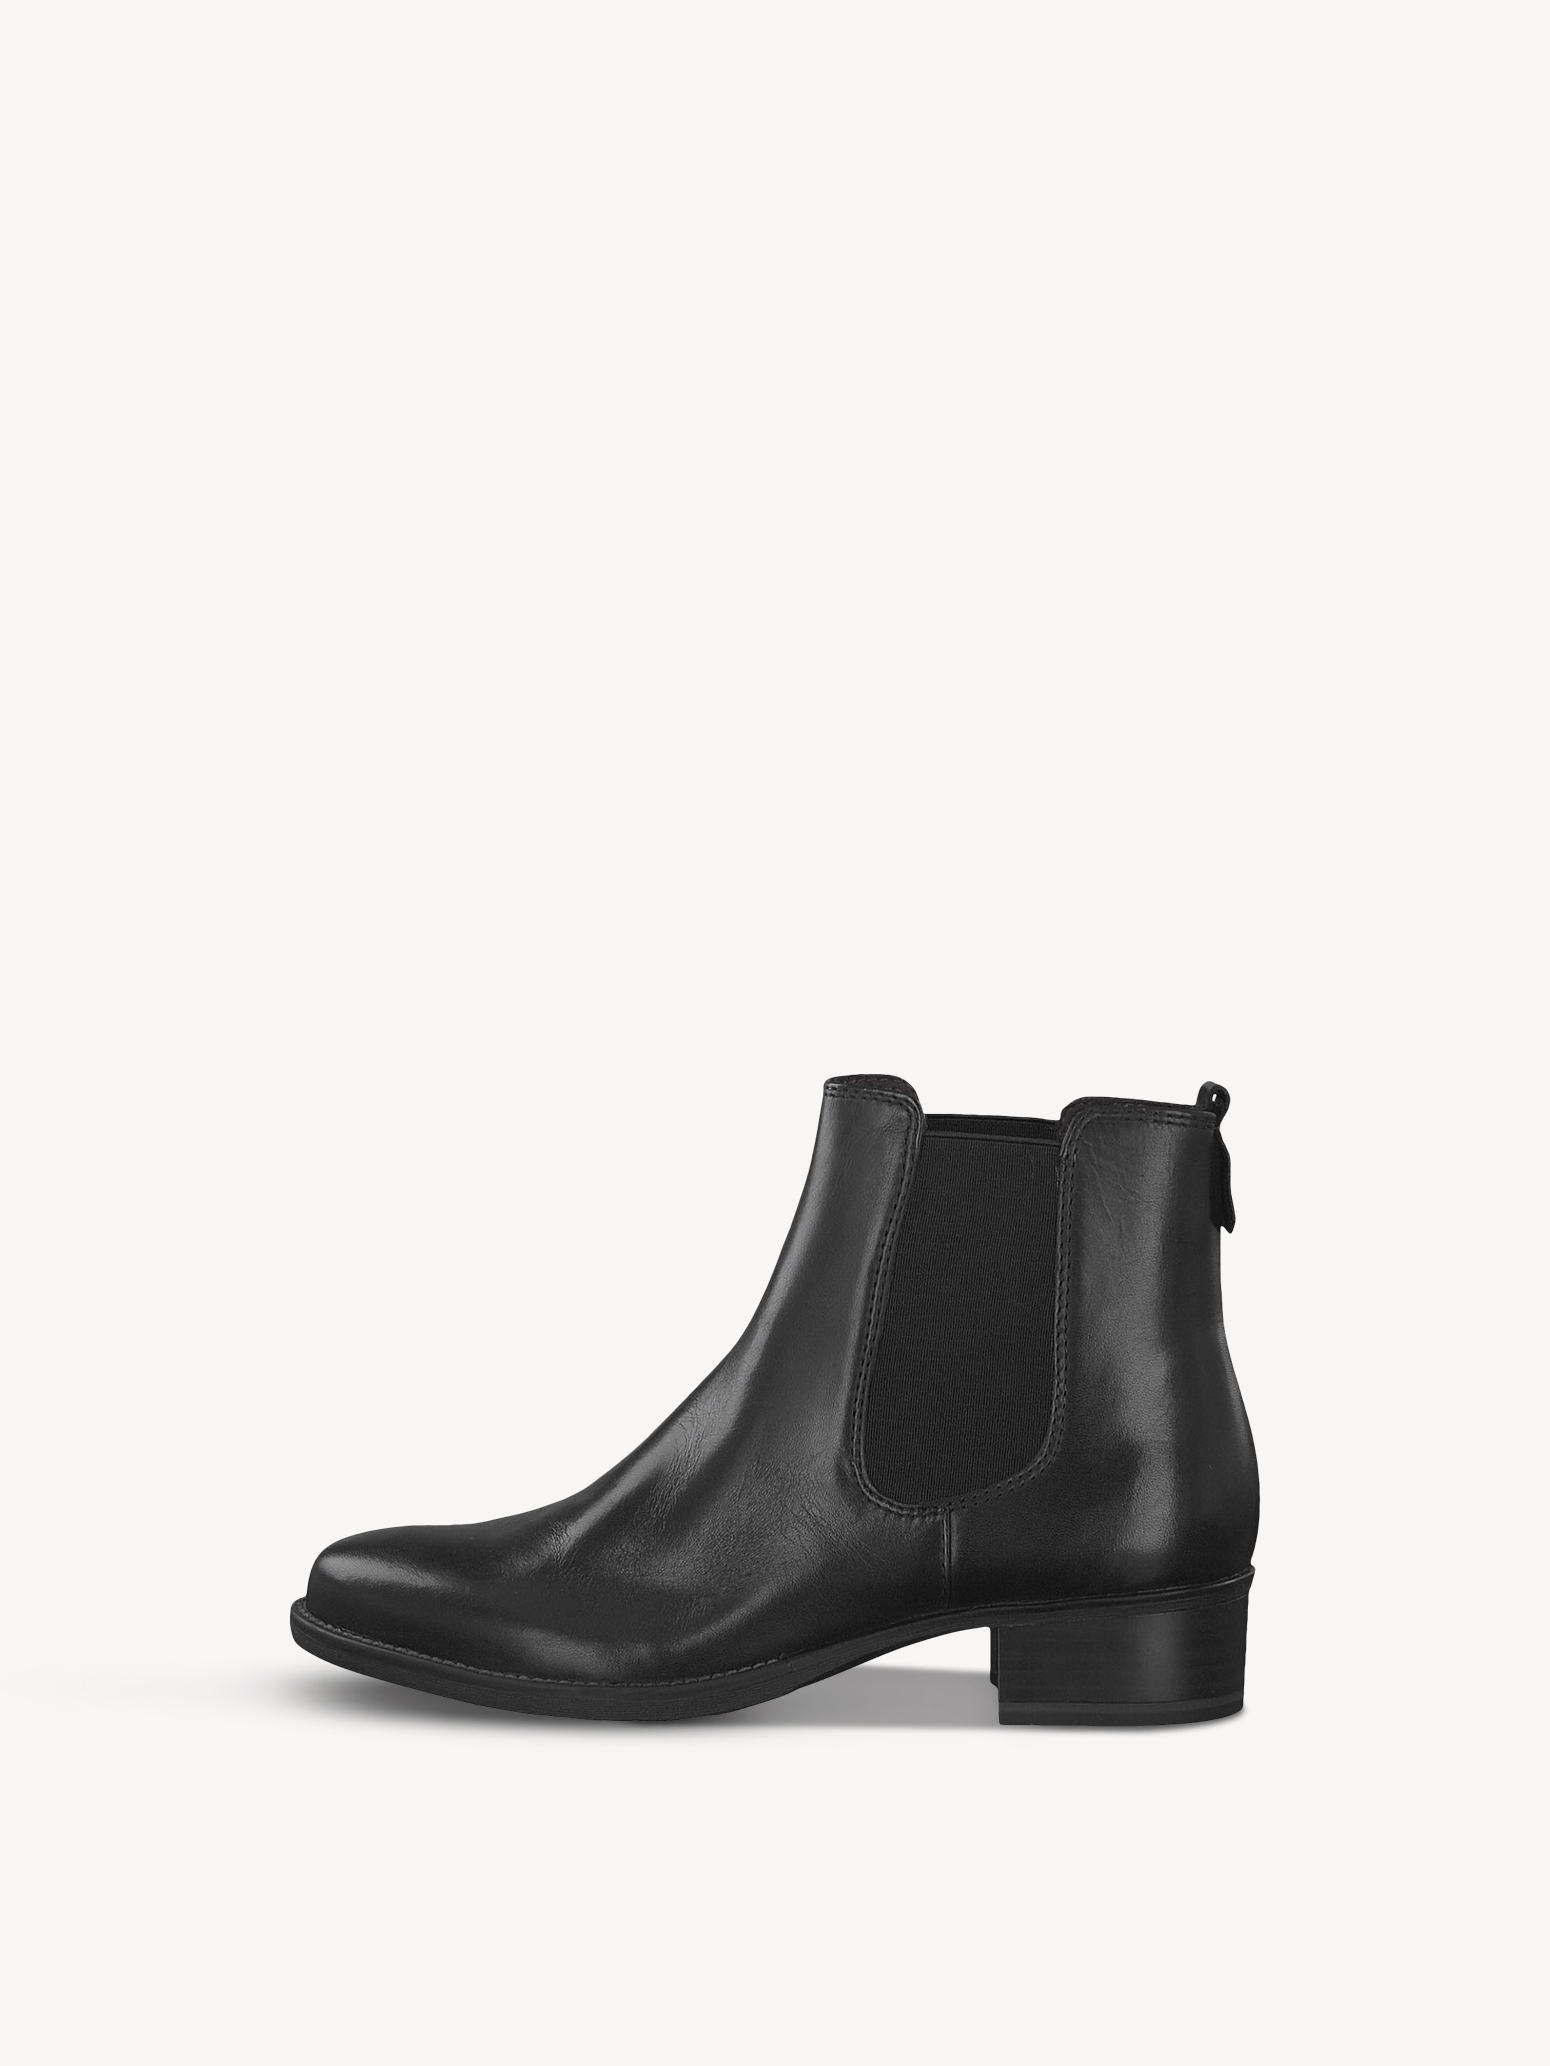 227836efed5 Leather Chelsea boot